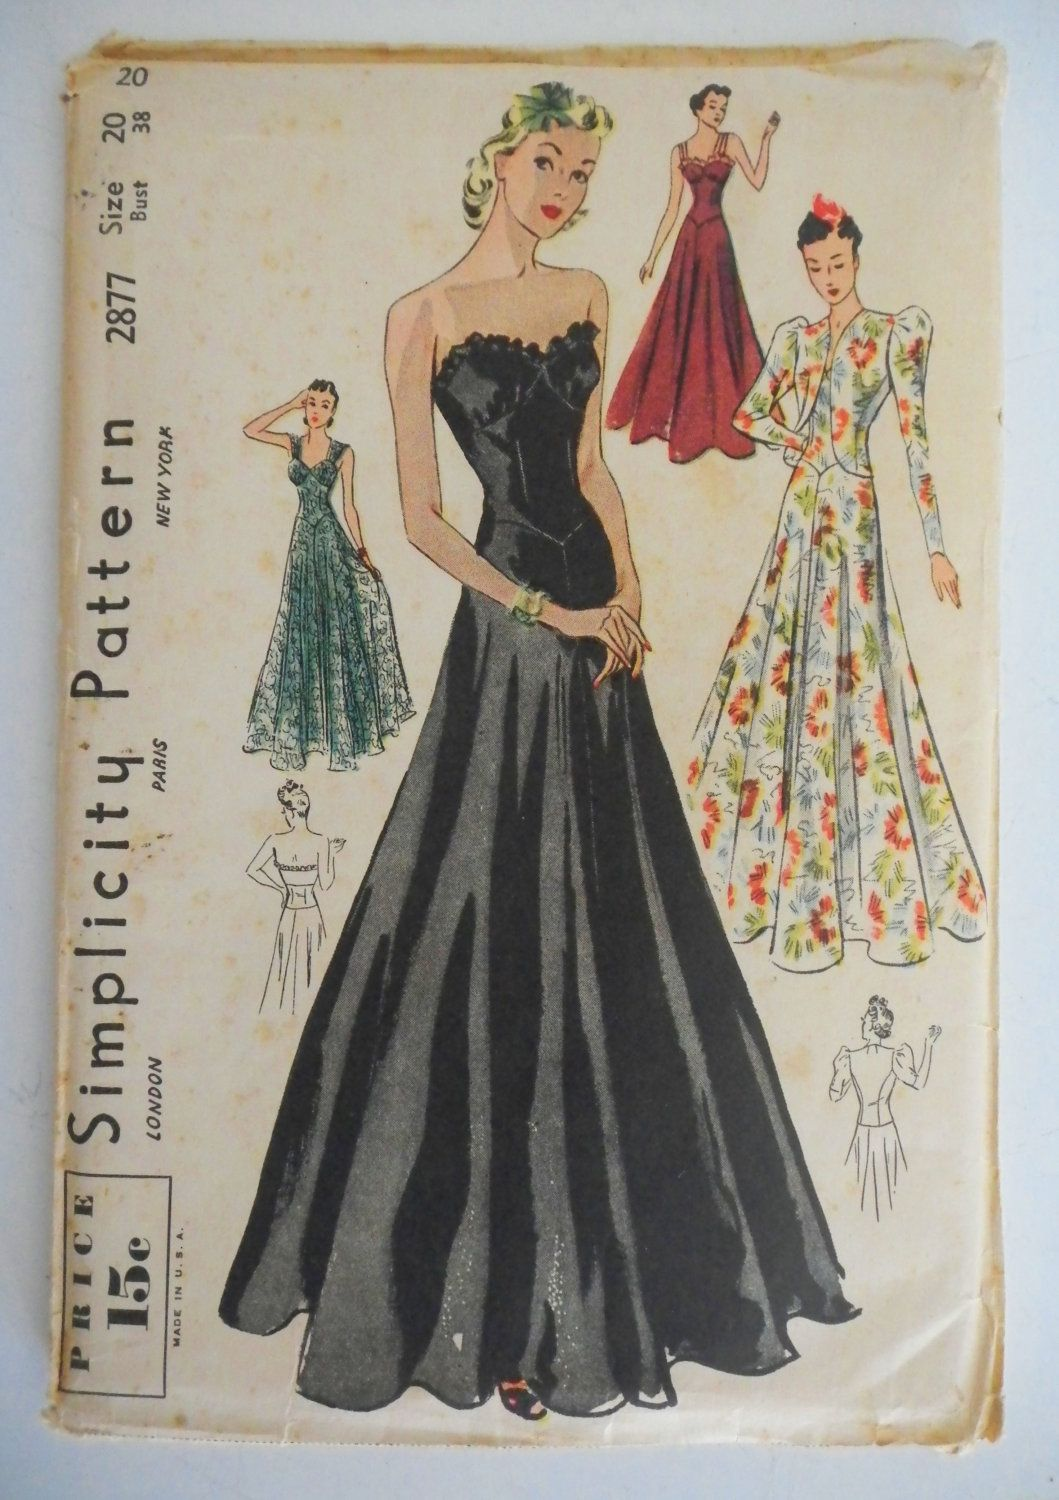 1930s Wedding Dress Pattern | www.imgkid.com - The Image ...